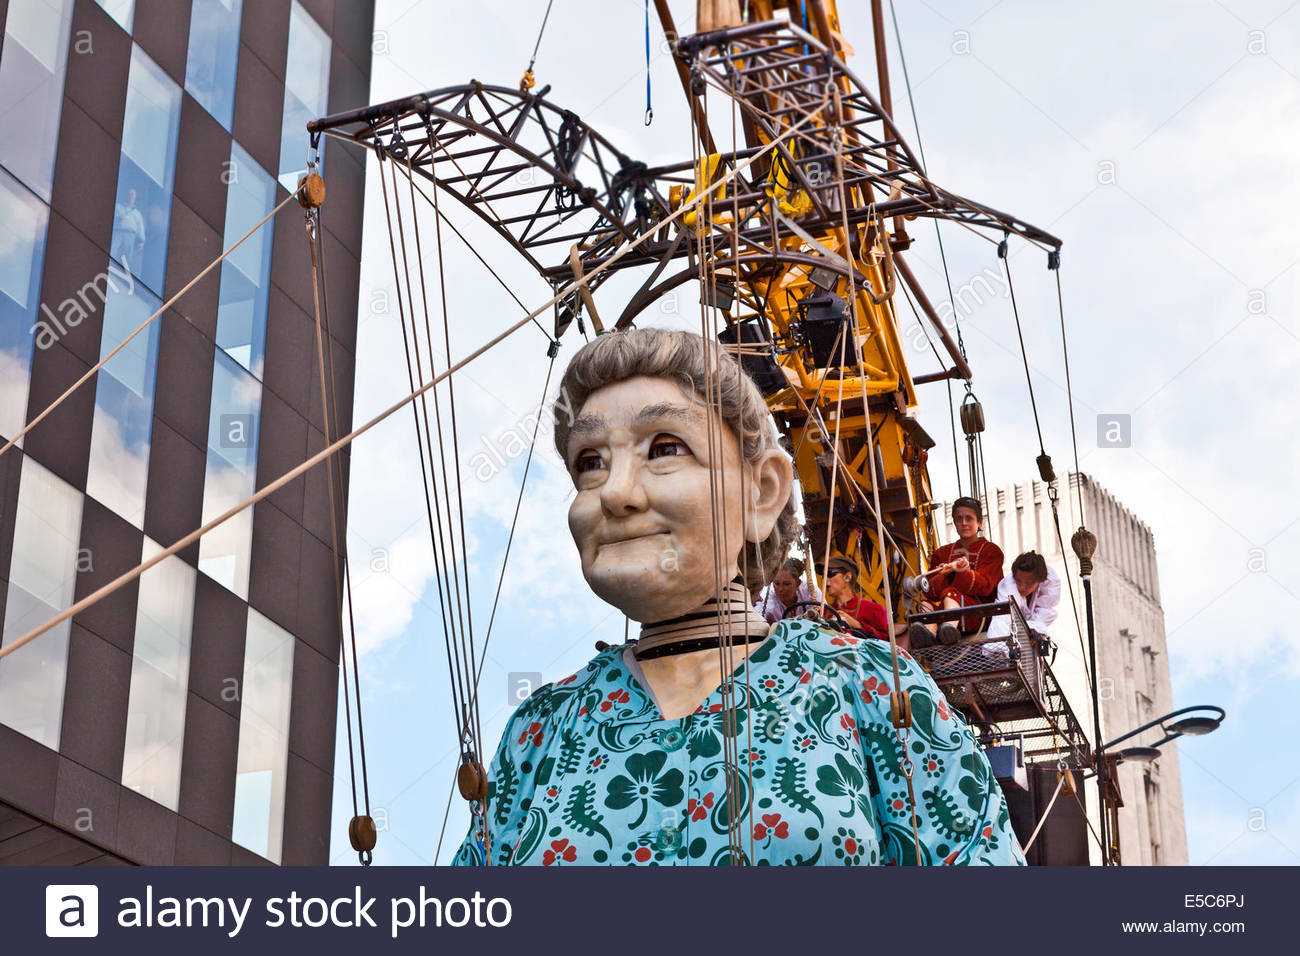 The giant Royal De Luxe street puppets in Liverpool for 'Memories of 1914' part of the city's WW1 centenary - Stock Image